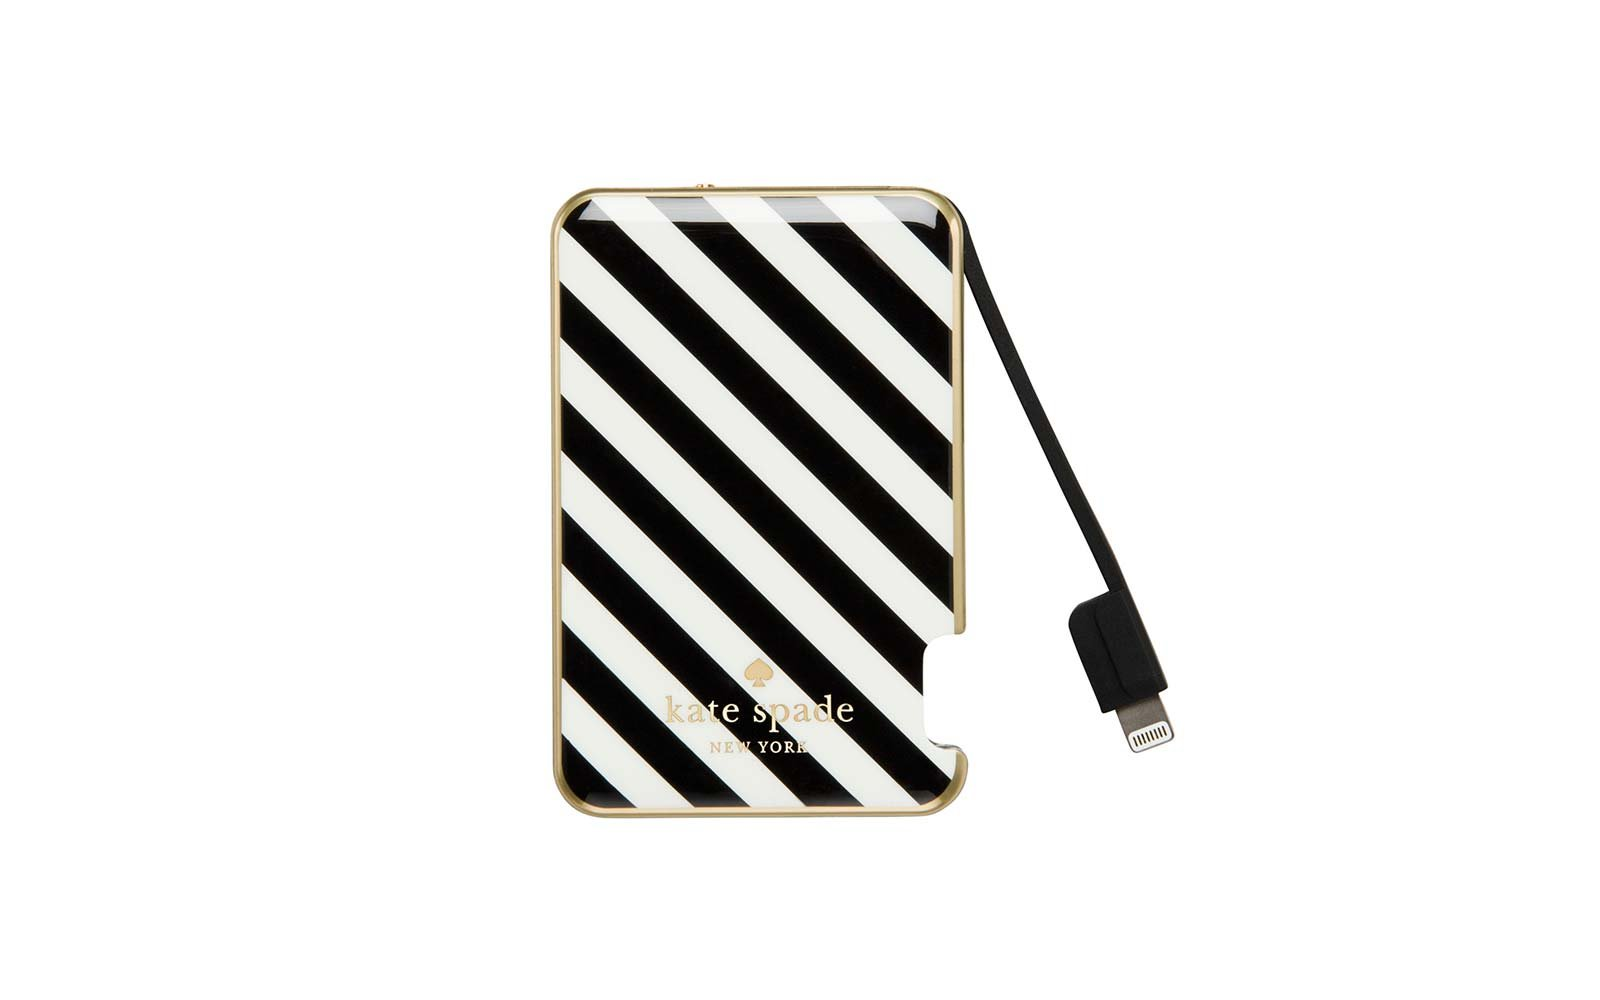 The Best Portable Chargers Power Banks Travel Leisure Simple Mobile Phone Battery Charger Kate Spade